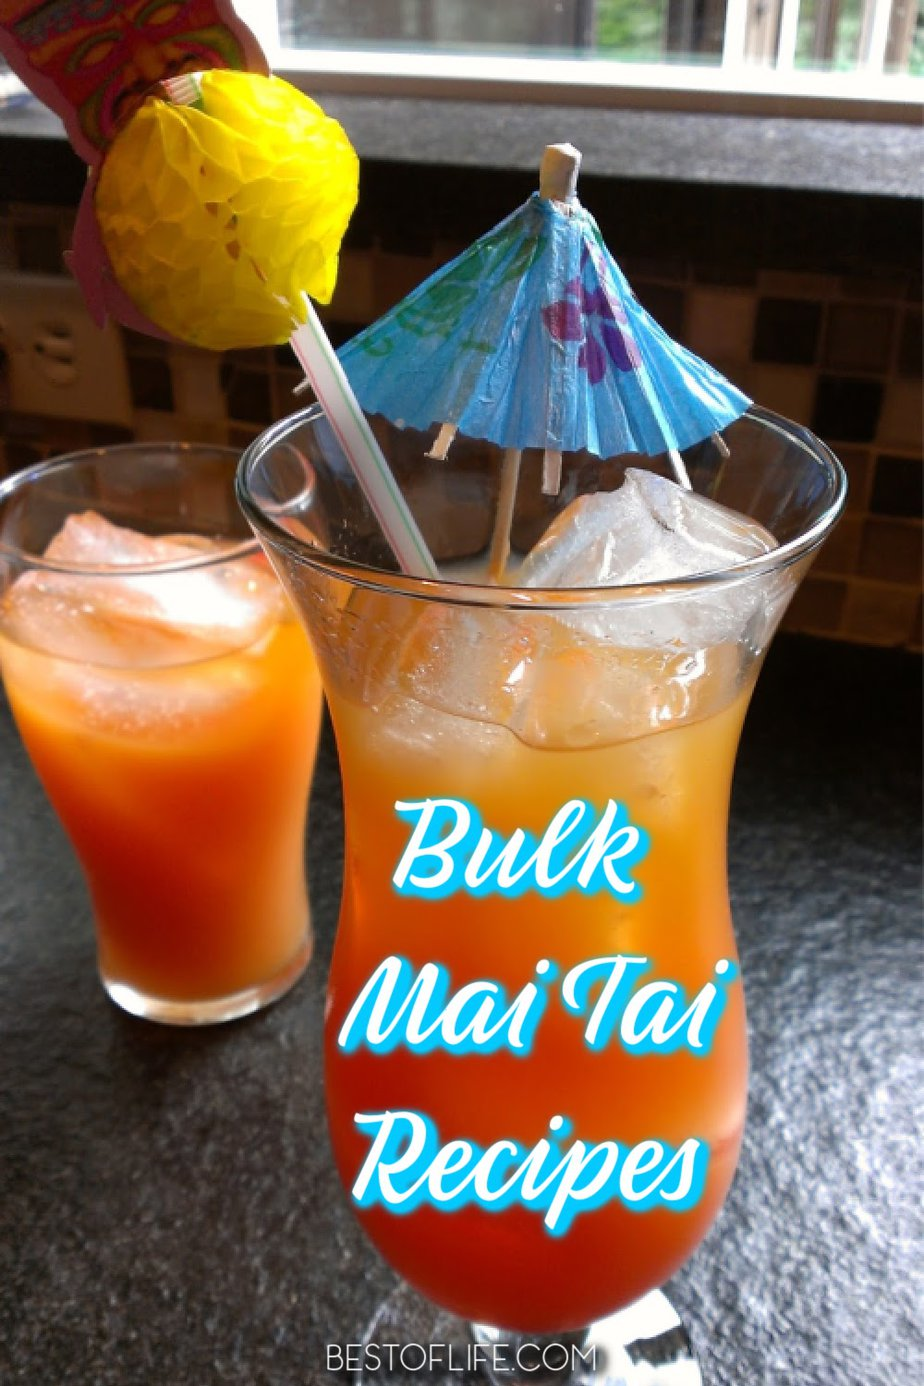 Bulk mai tai recipes can help liven up your party and make planning and hosting a party easier than ever. Serve these mai tai pitcher recipes for parties of any size for a flavorful cocktail guests will love! Party Recipes | Party Cocktail Recipes | Cocktail Pitcher Recipes | Cocktail Recipes | Party Drink Recipes #cocktails #recipe